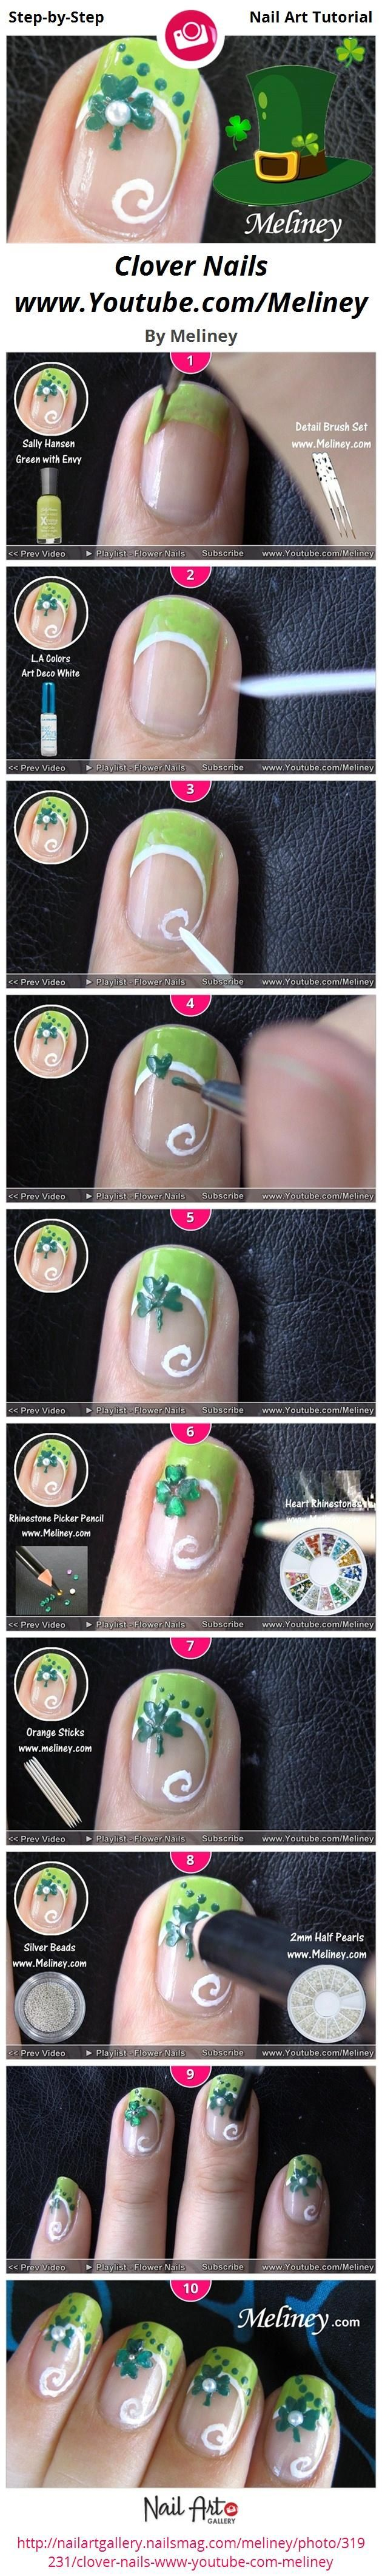 Nail Art / Nail Art Gallery Step-by-Step Tutorial - Fereckels | uñas ...